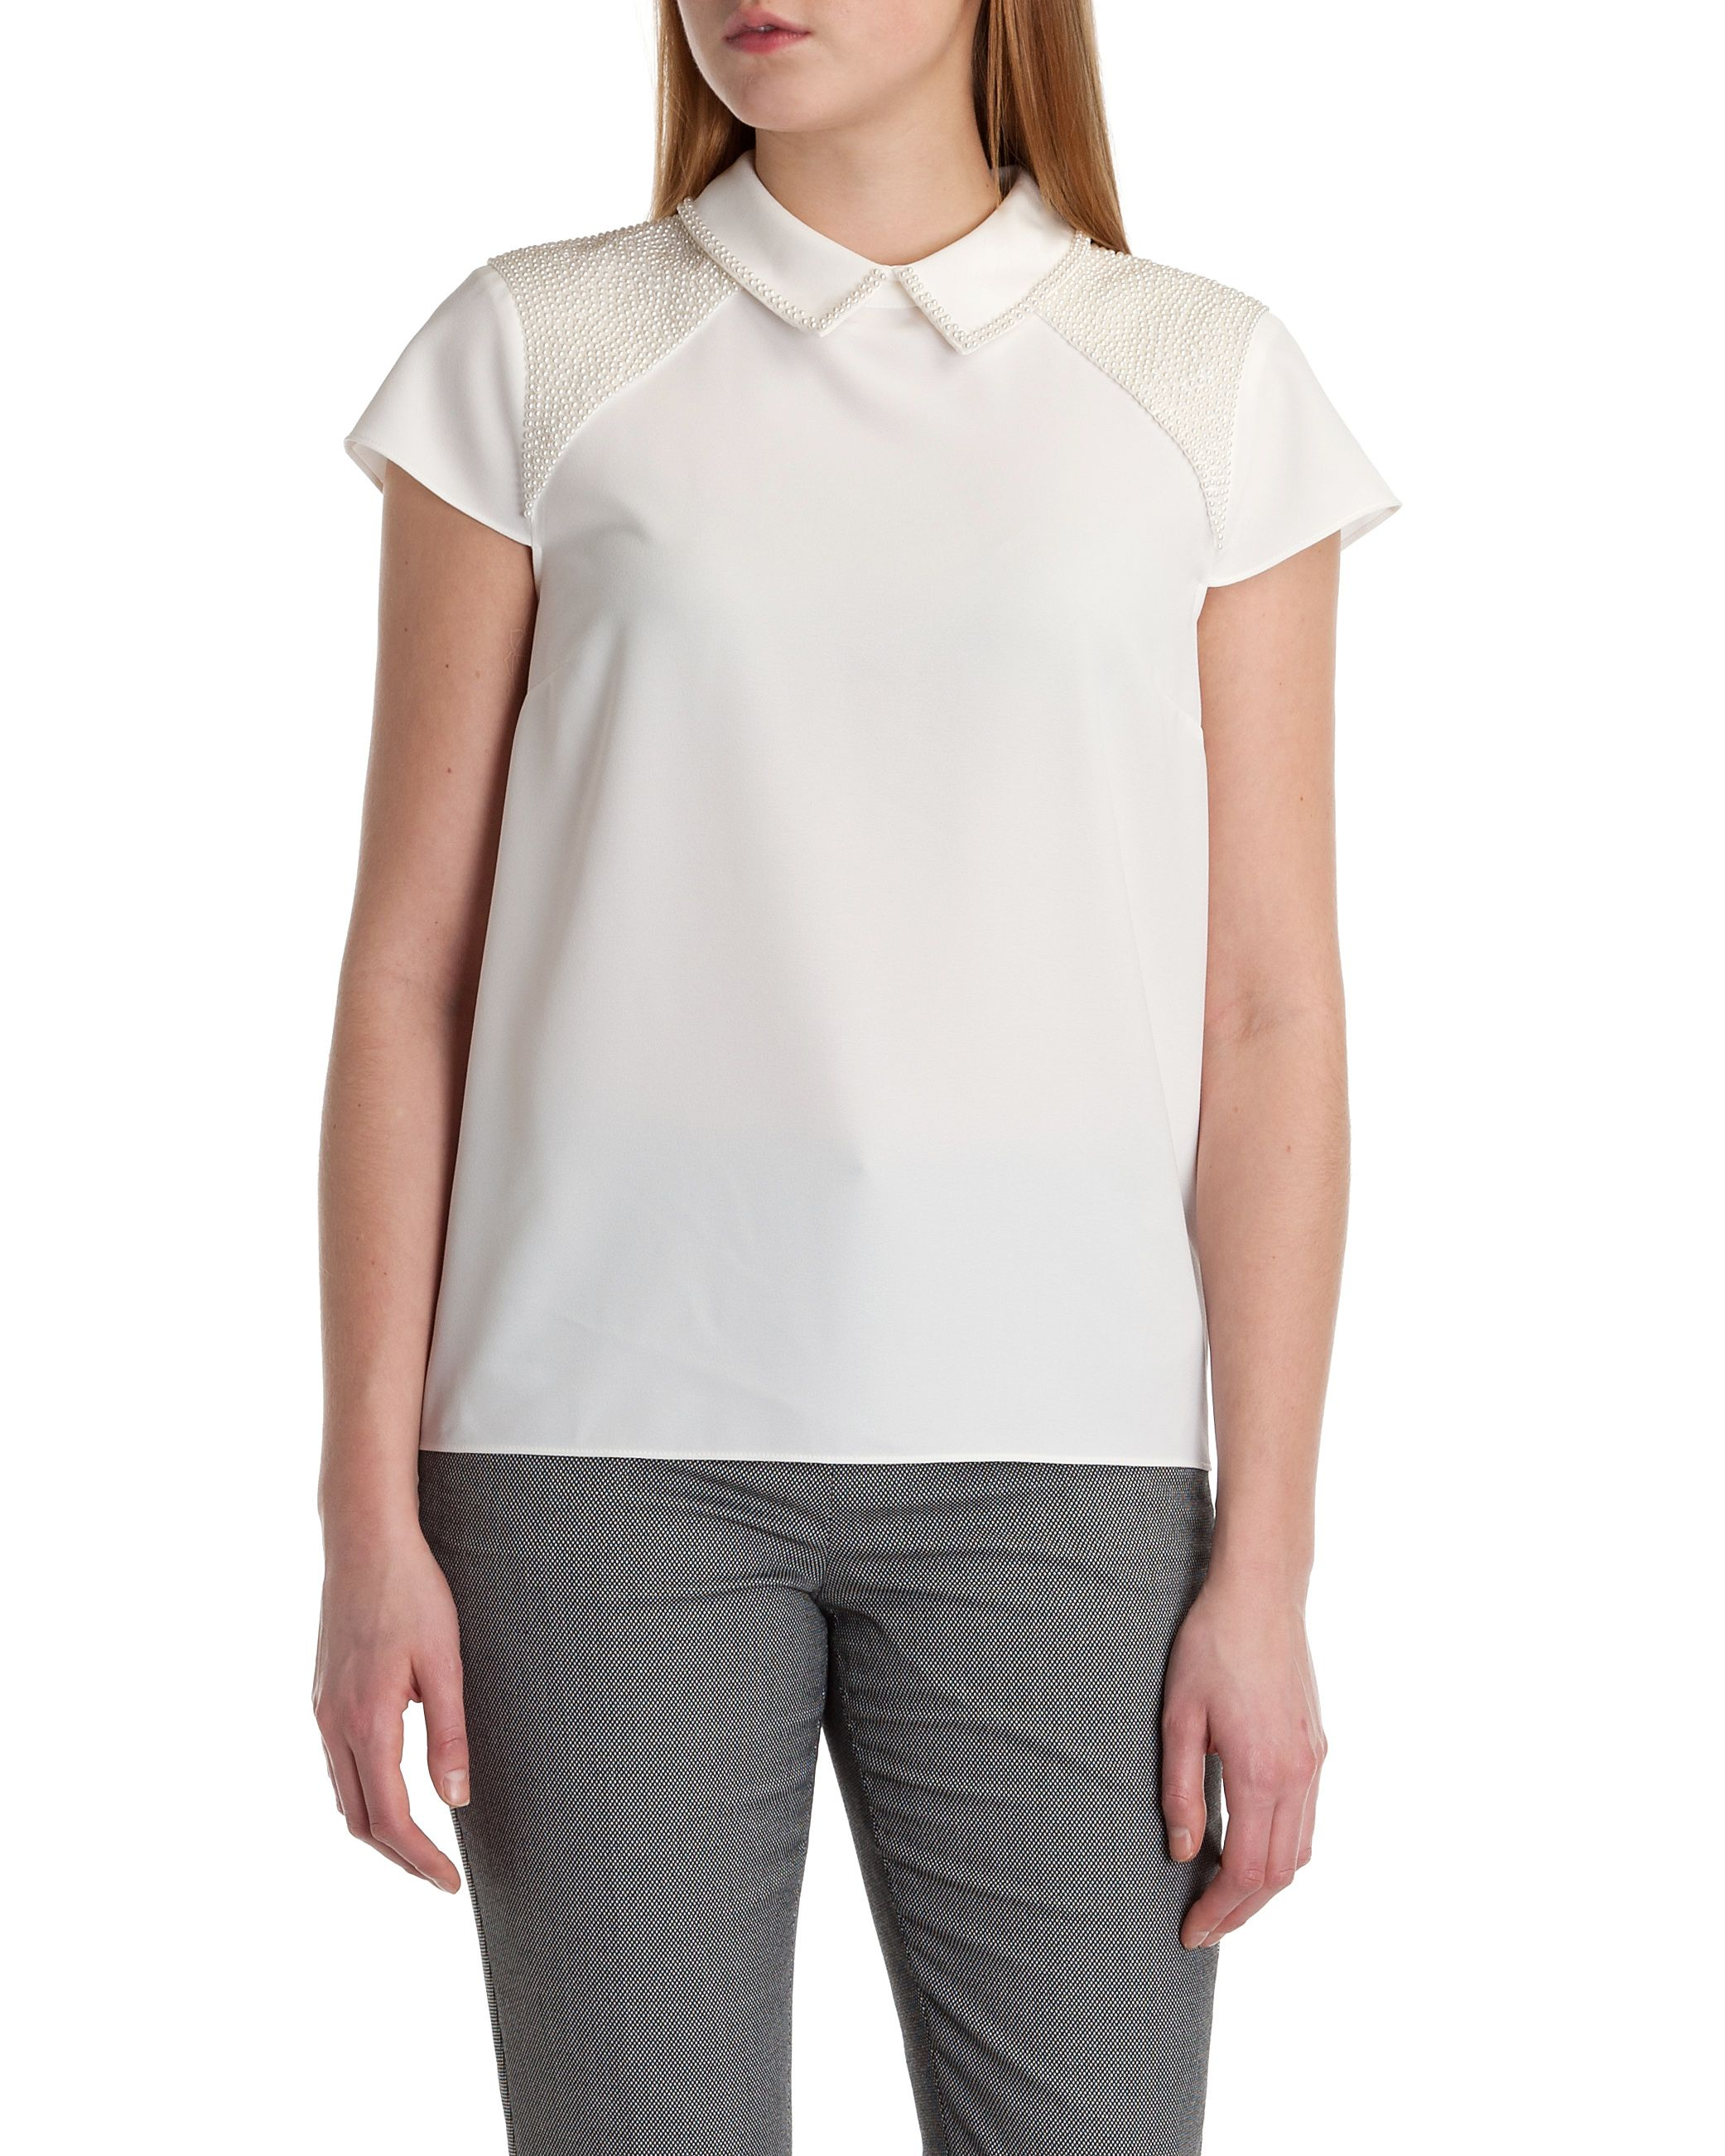 Osster pearl embellished top